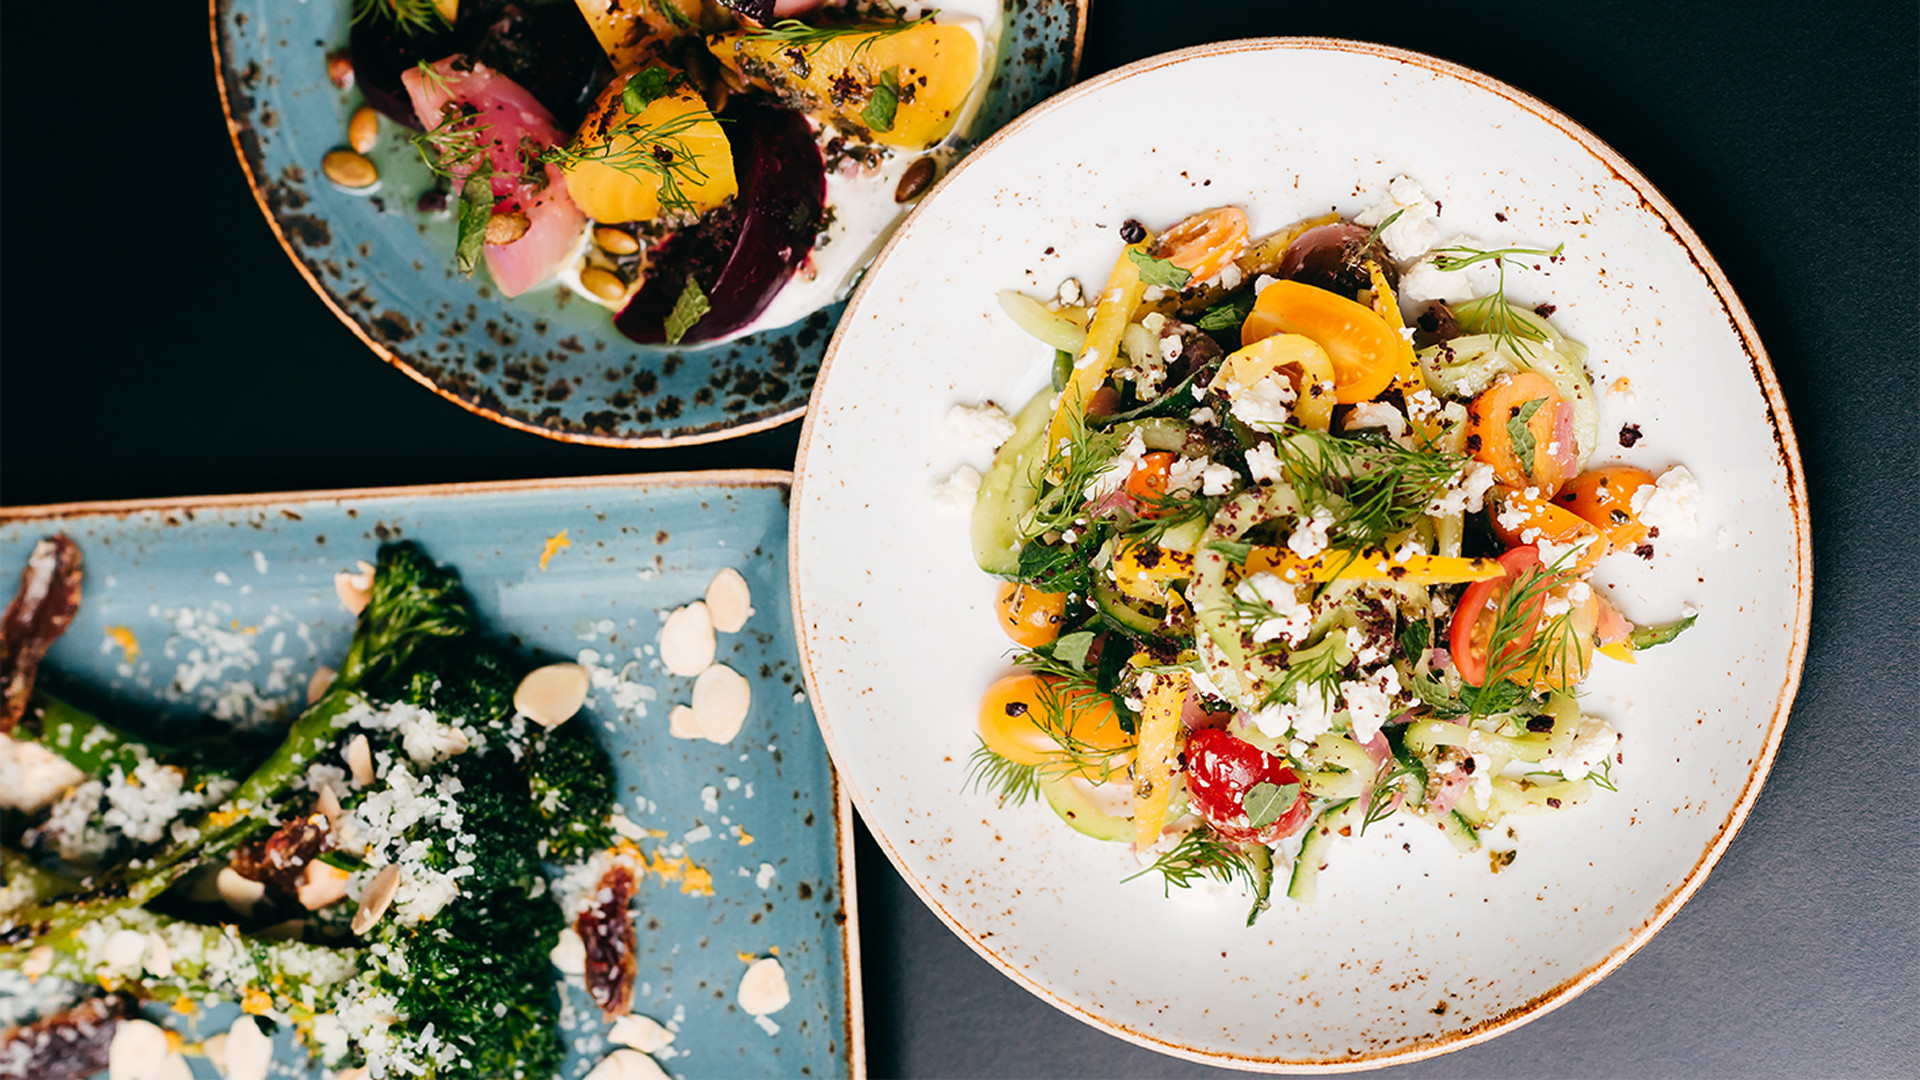 Best farm-to-table restaurants Toronto | A selection of seasonal dishes the Green Wood